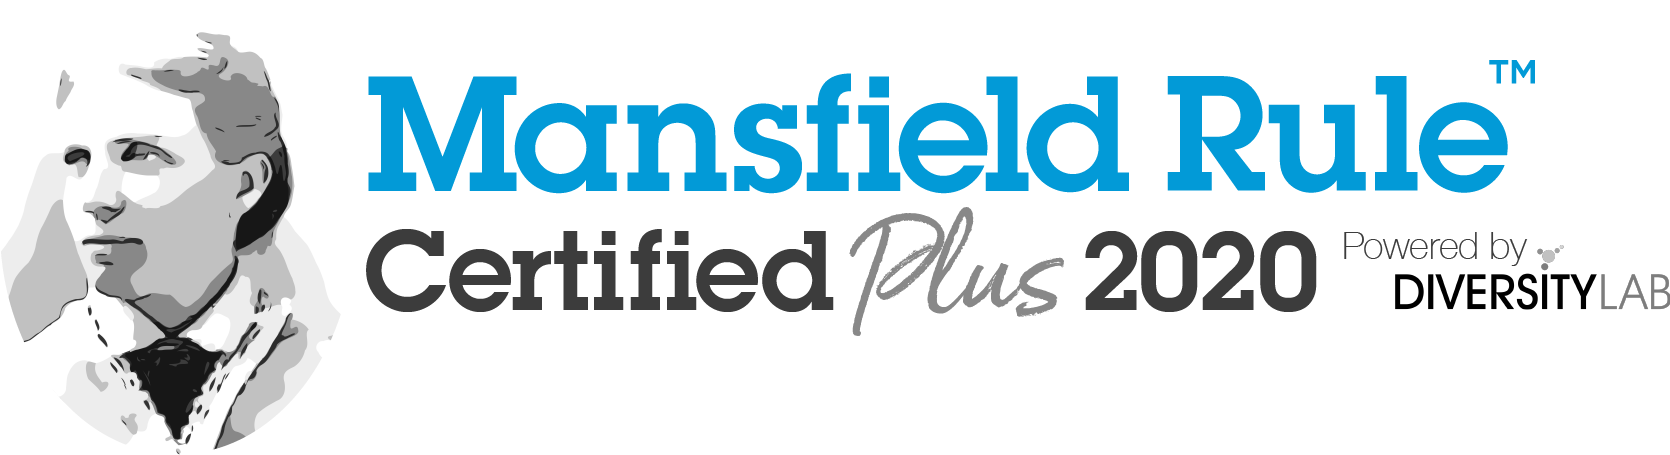 Mansfield Certification Badge 2020